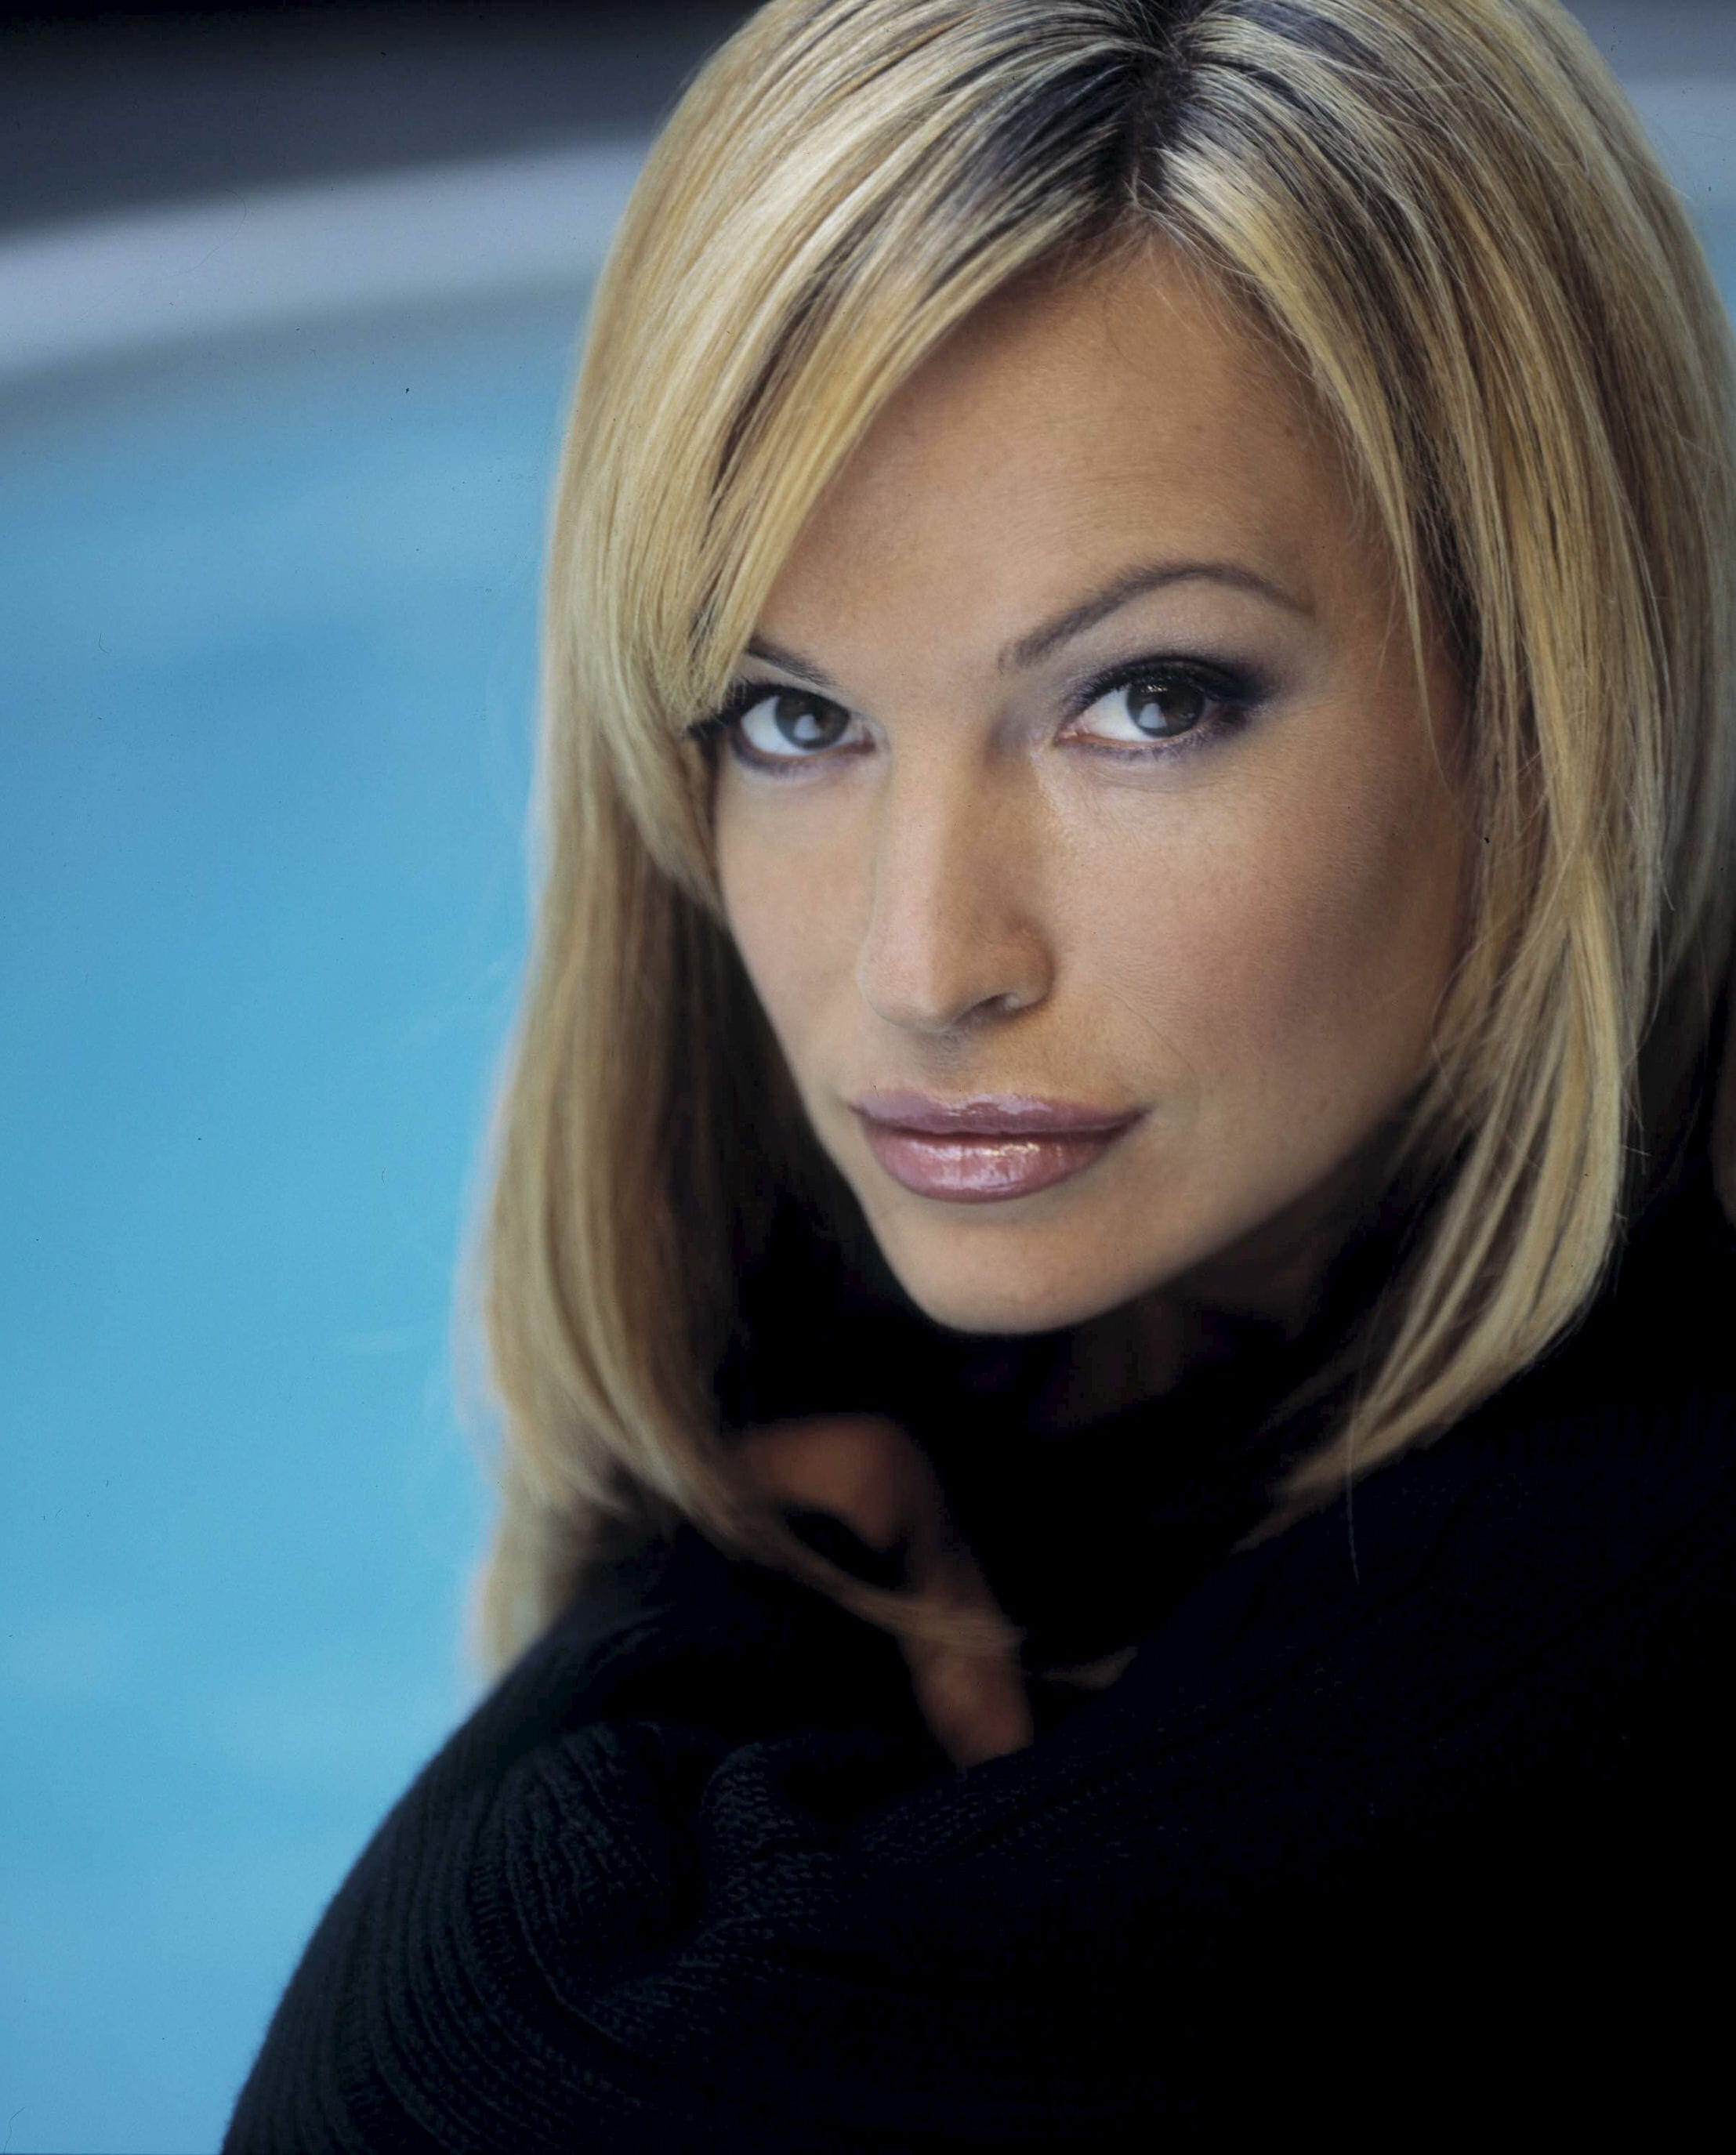 Jolene Blalock HQ wallpapers